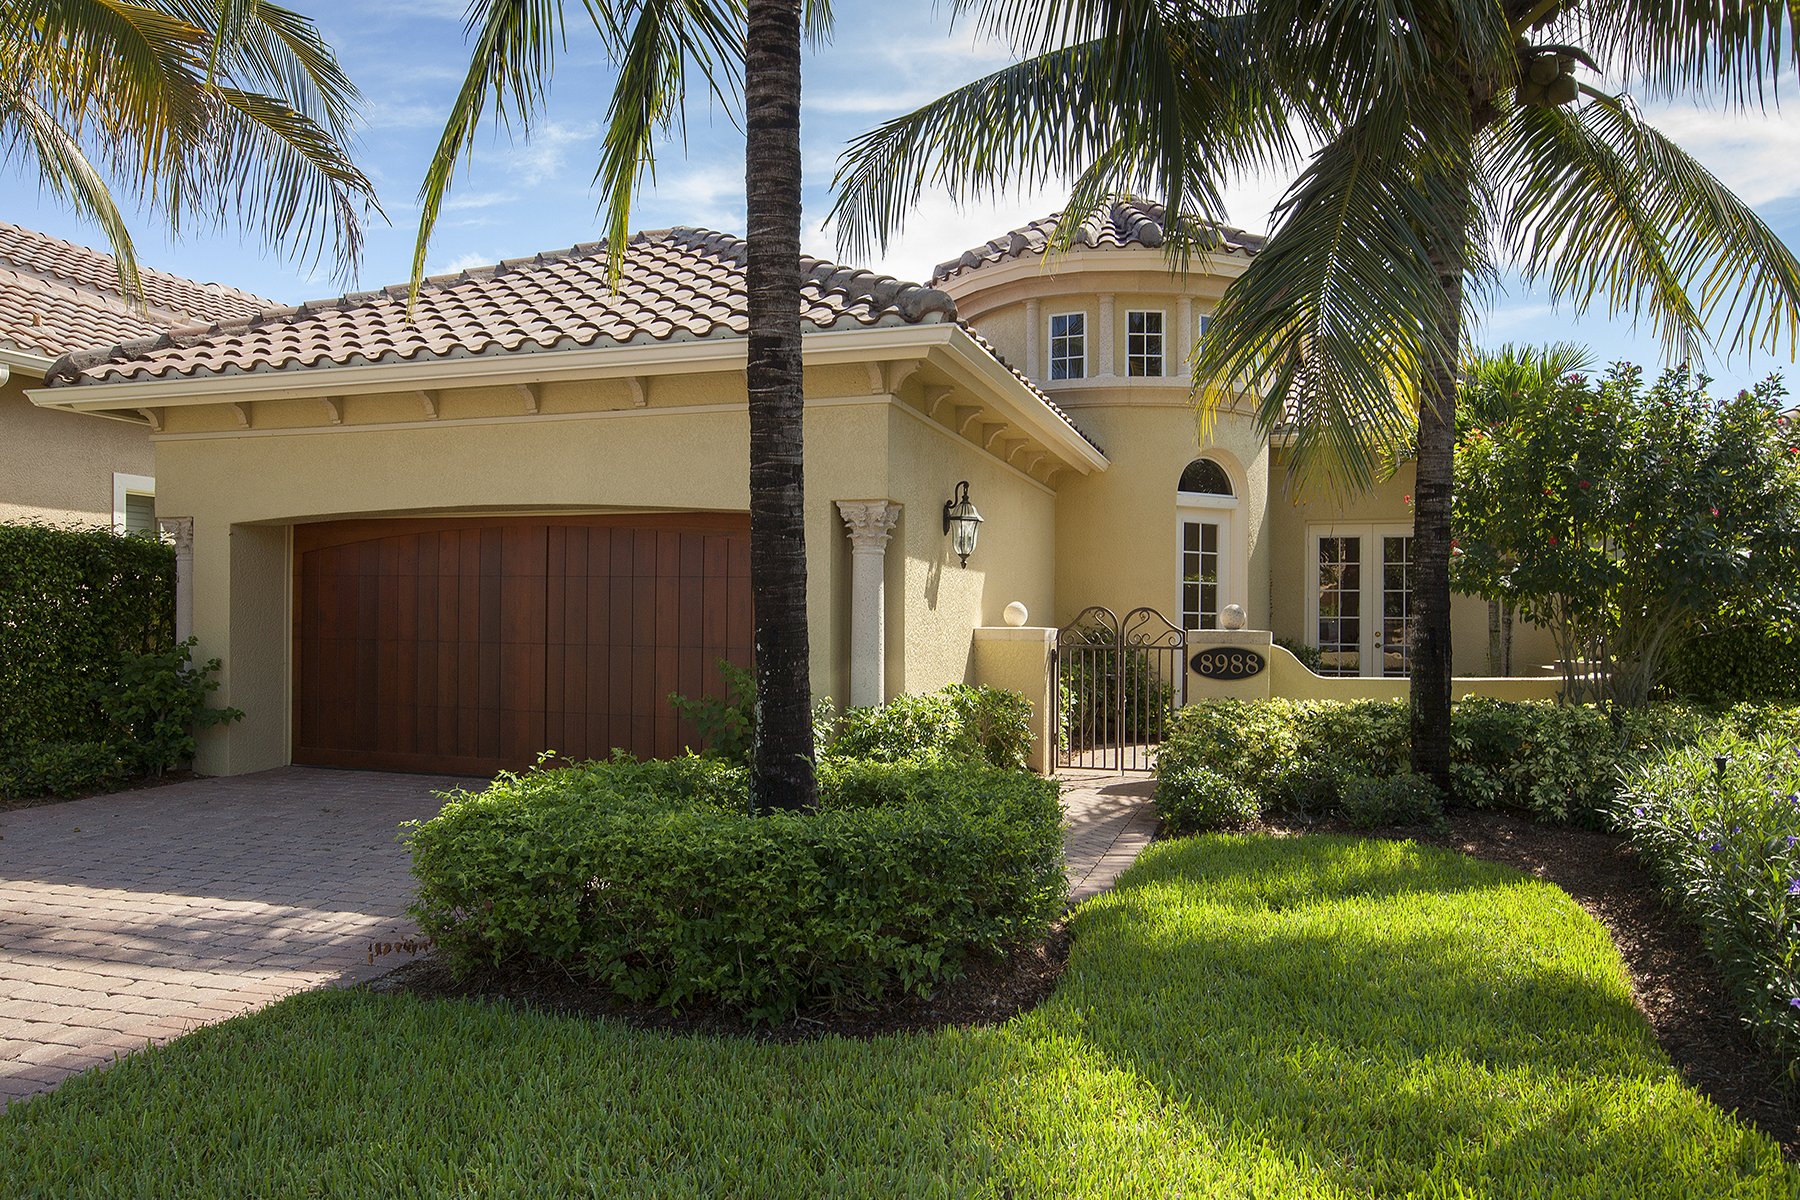 Moradia para Venda às CRANBERRY CROSSING 8988 Cherry Oaks Trl Naples, Florida, 34114 Estados Unidos